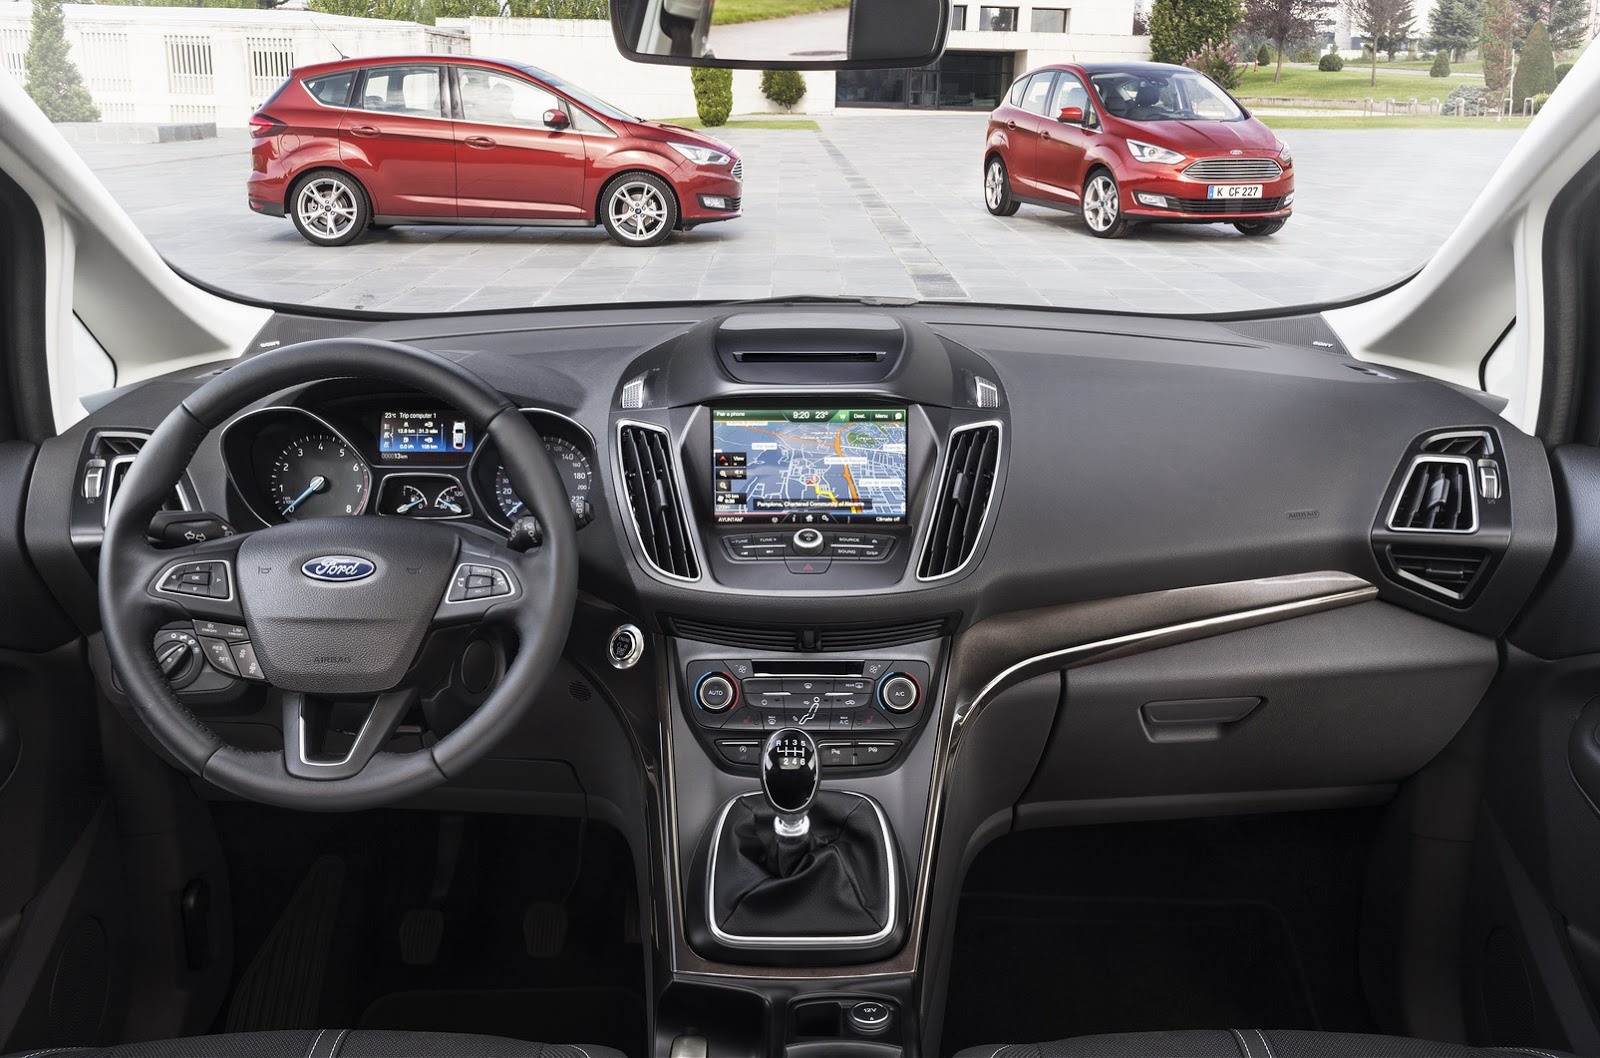 superb-design-of-the-black-dash-ideas-added-with-black-steering-ideas-as-the-ford-c-max-2015-interior-ideas